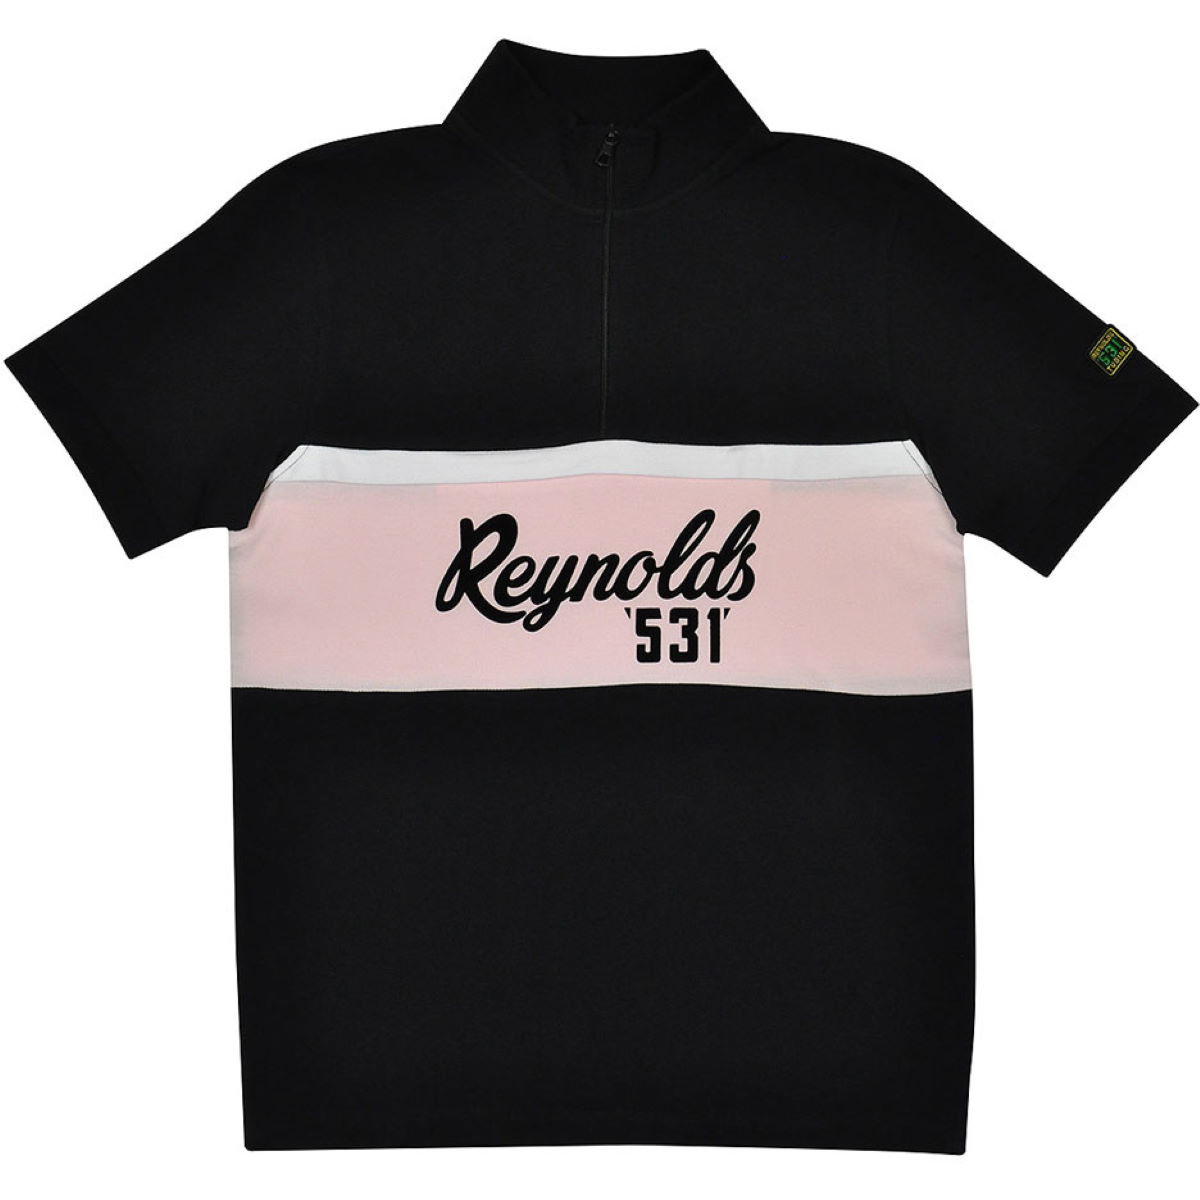 T-shirt Reynolds Clothing 531 Banner Logo - S Black / Pink /White